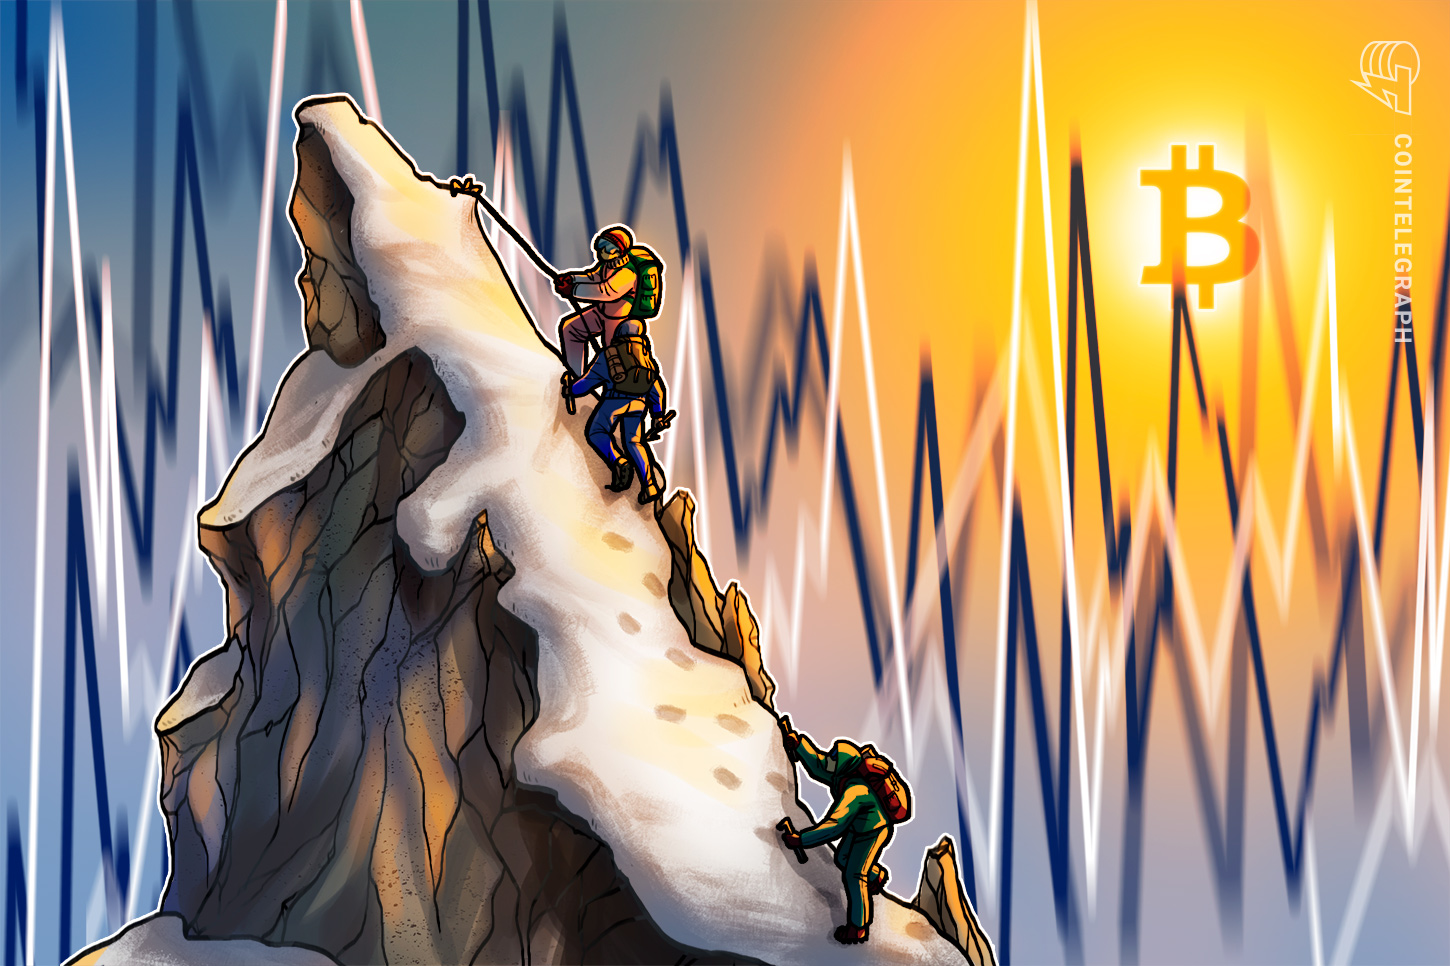 Bitcoin bulls target prices above $58K ahead of Friday's $820M options expiry